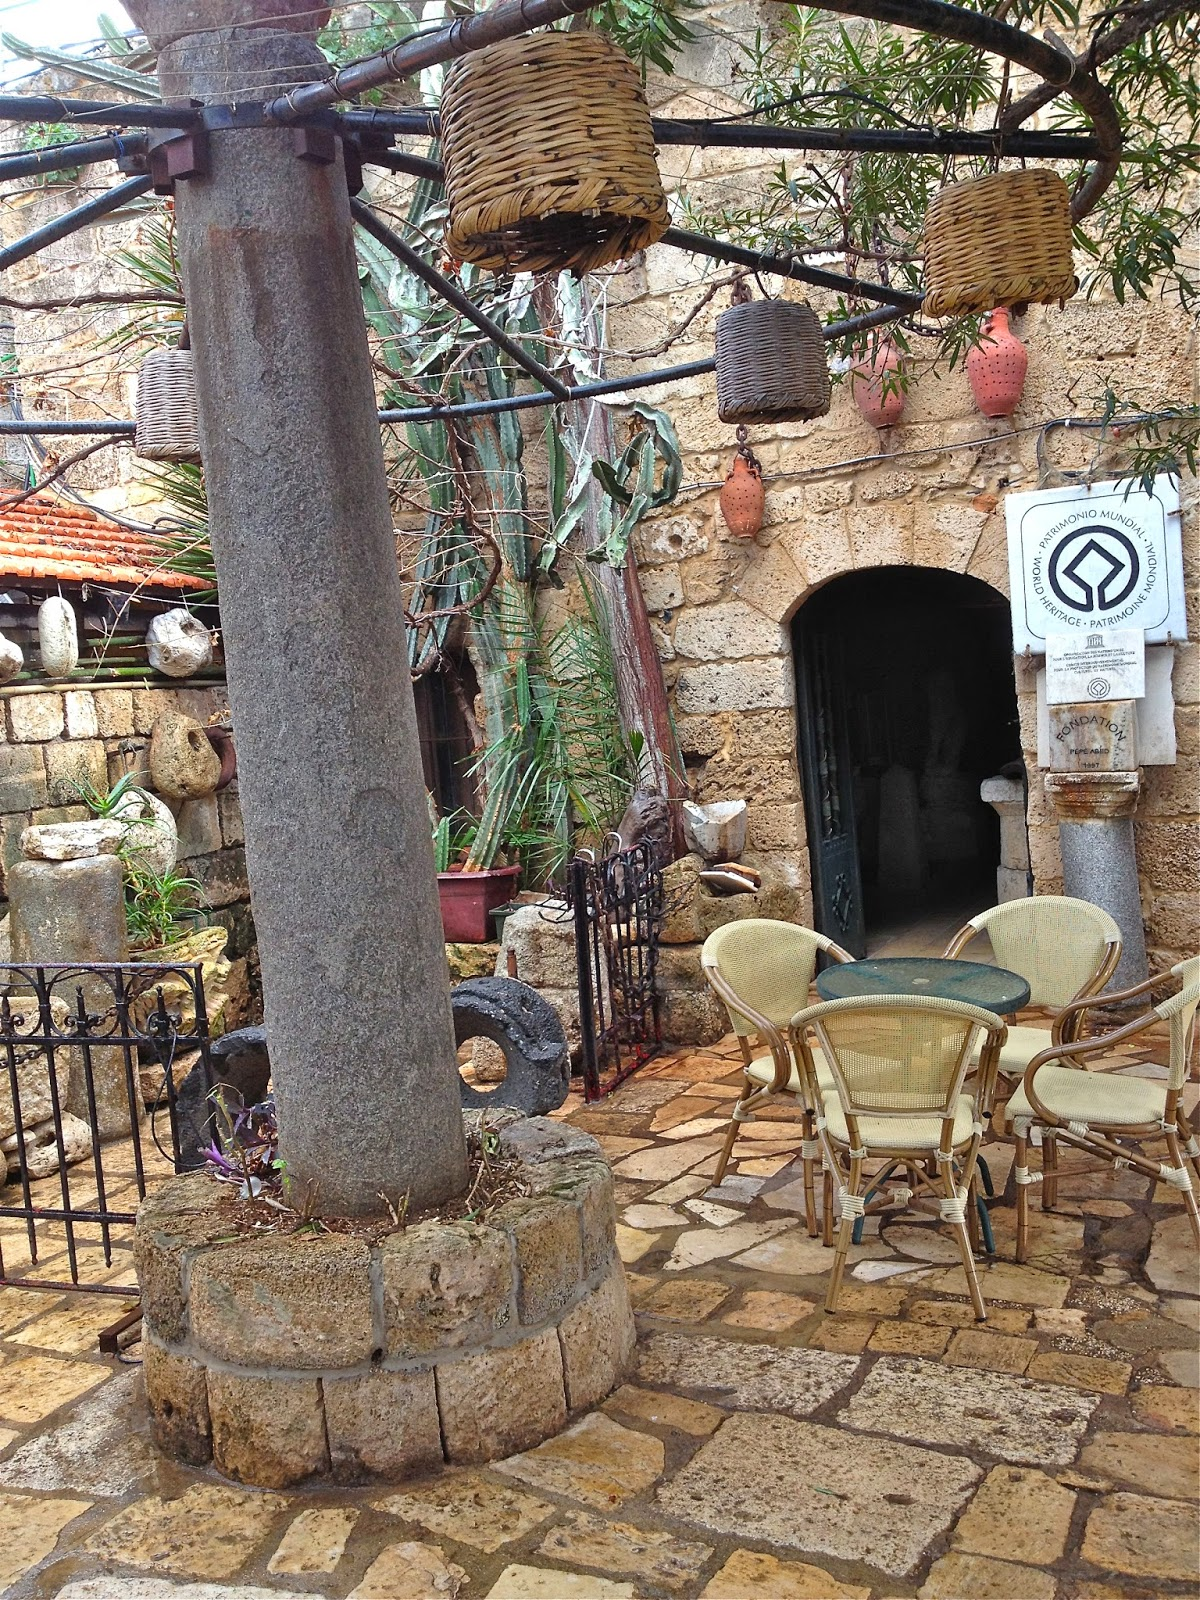 Picture of Pepe's Fishing Club. Byblos, Lebanon.